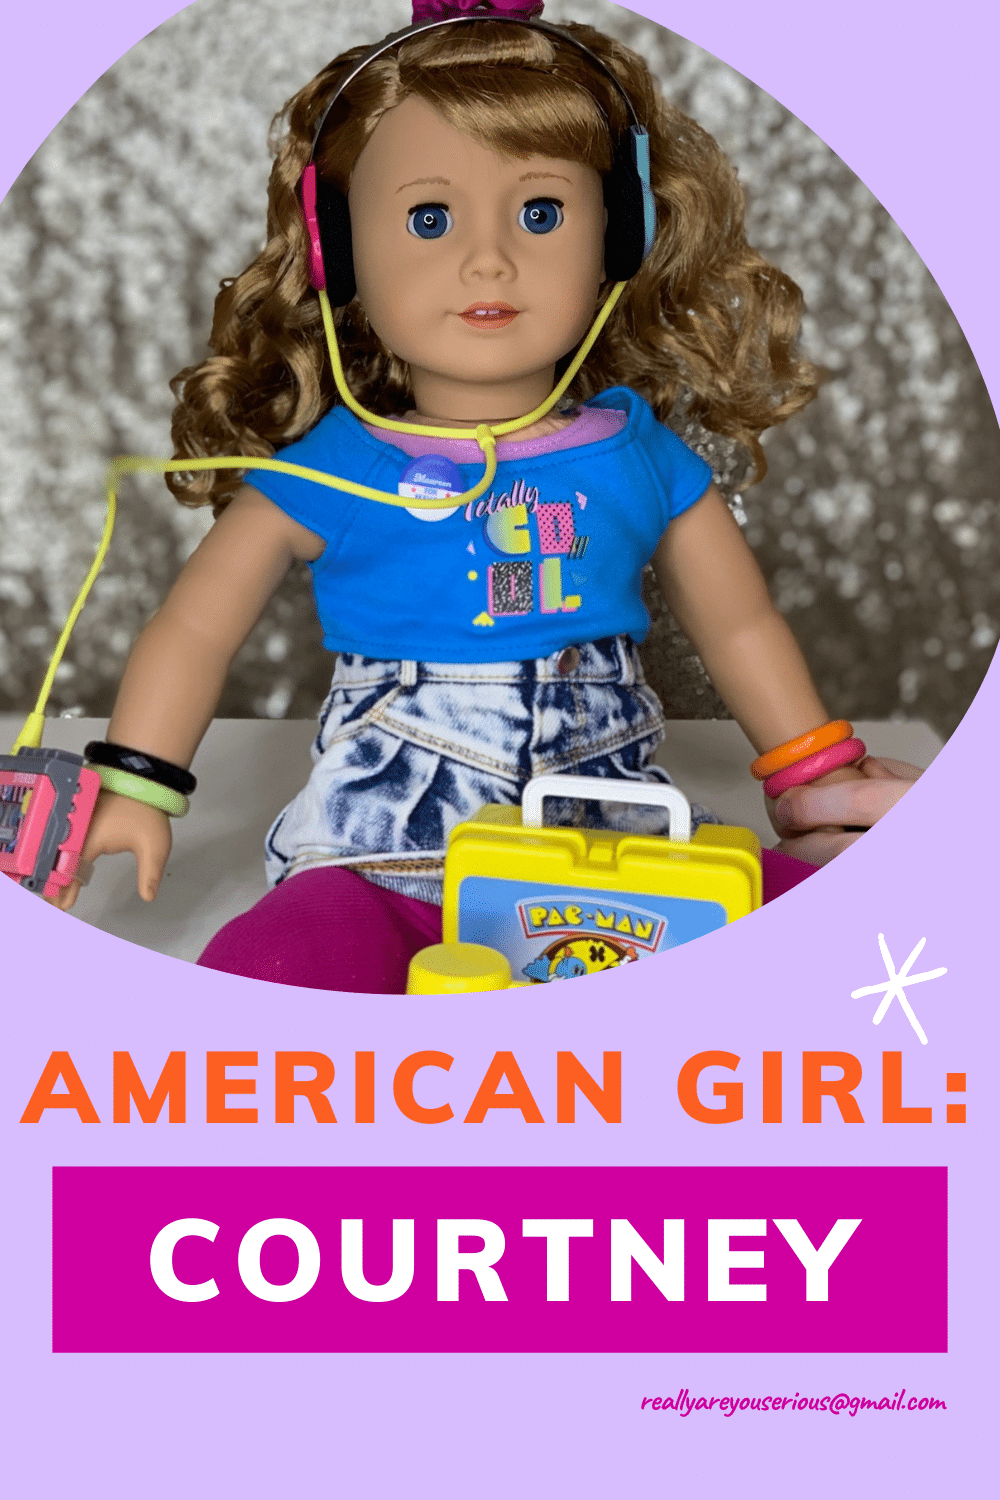 American Girl Courtney from 1986